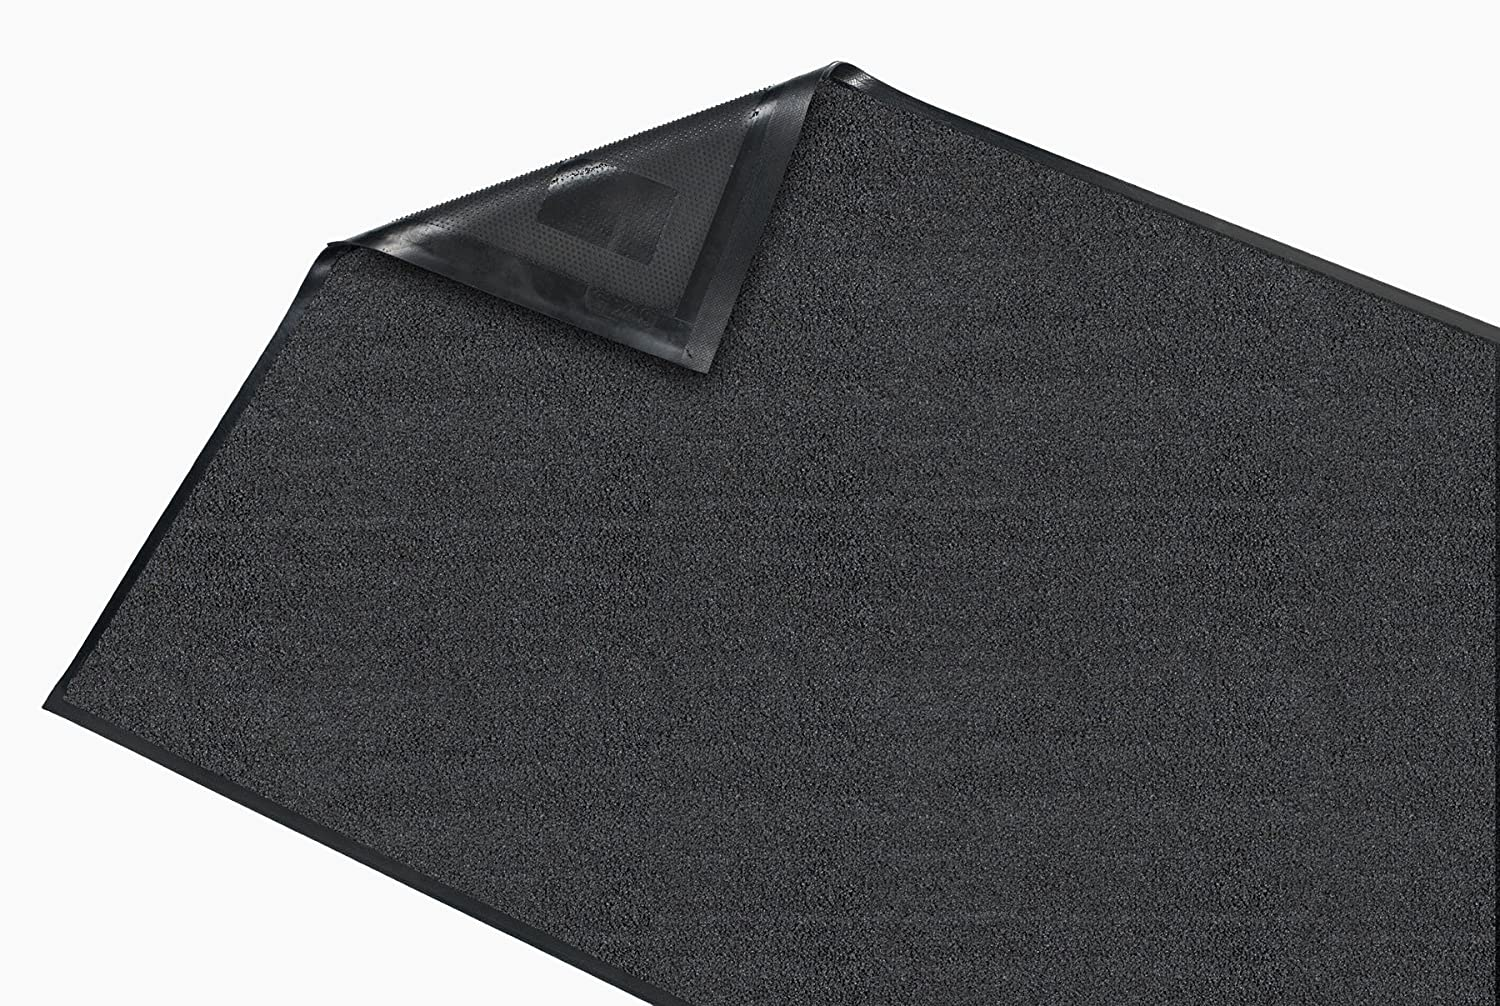 Grey 3x19 Rubber with Nylon Carpet Guardian Platinum Series Indoor Wiper Floor Mat